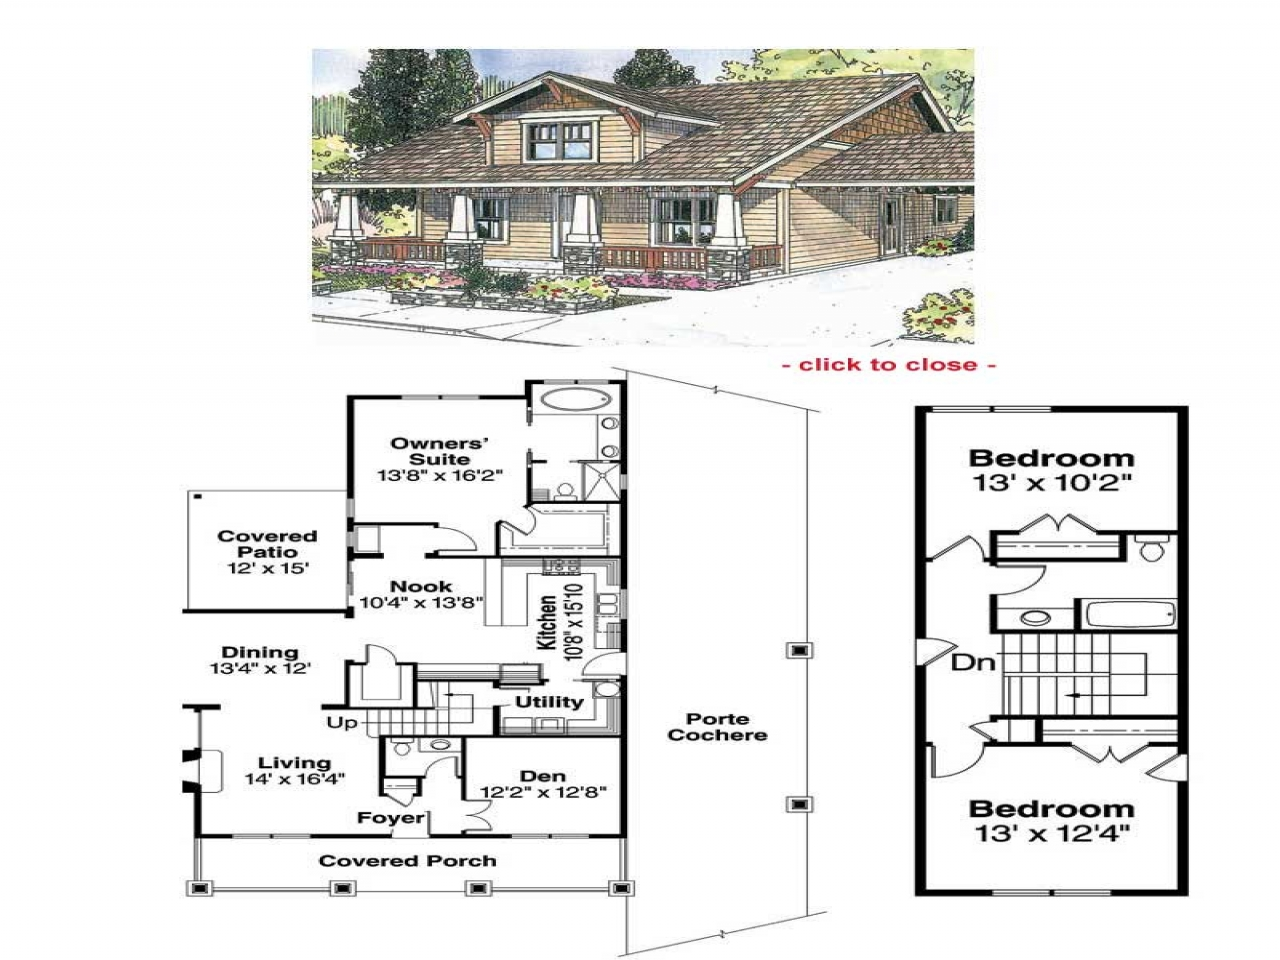 Craftsman bungalow plans find house plans vintage for Old style craftsman house plans